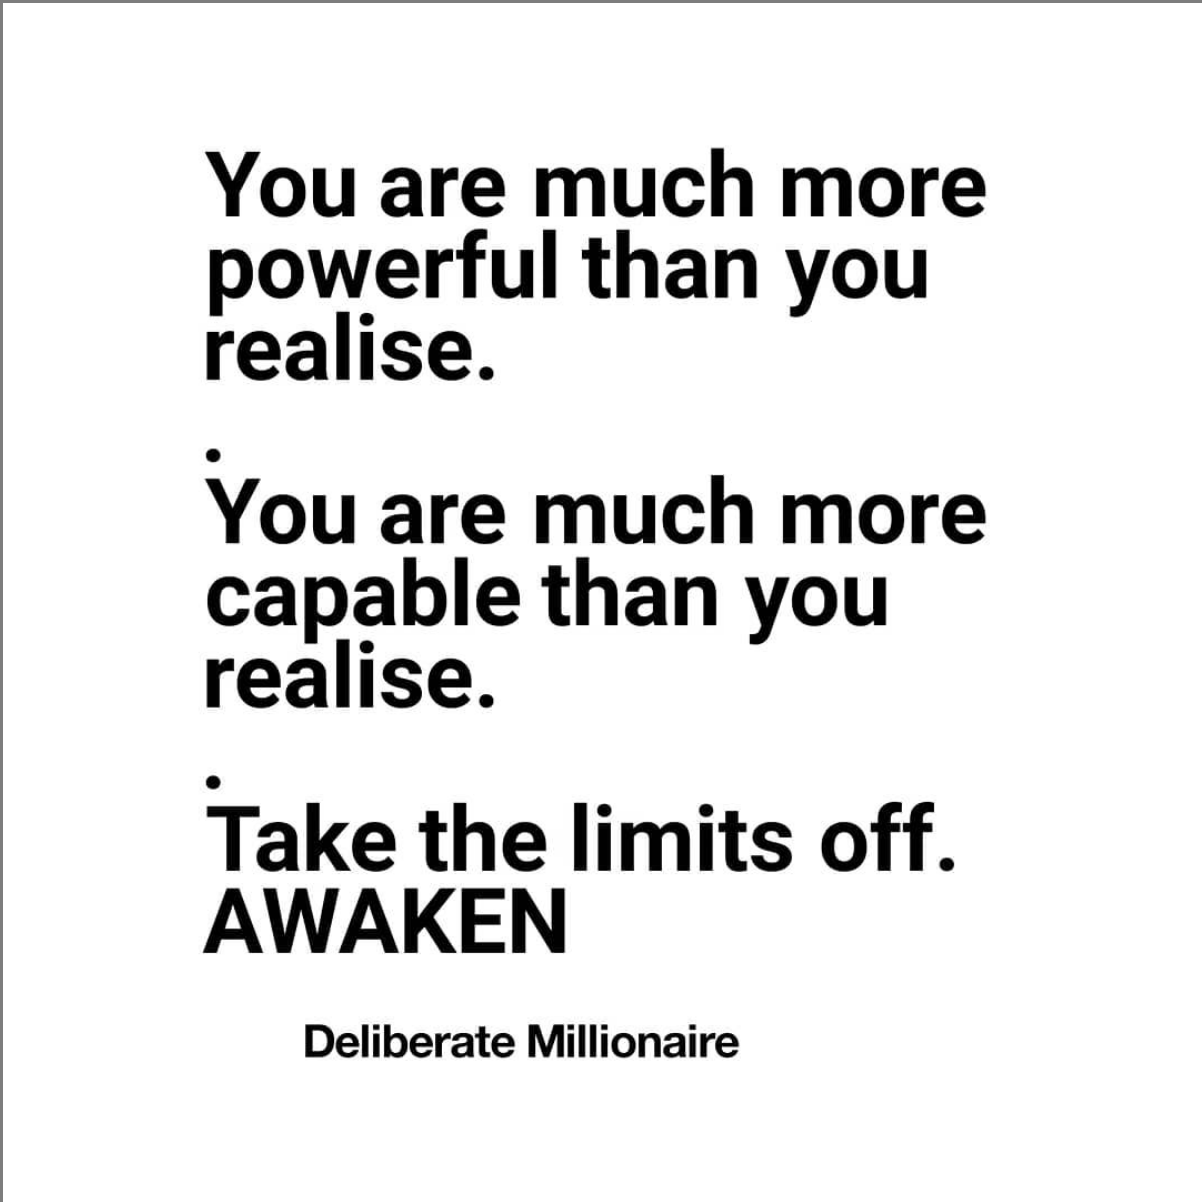 You Are MUCH MORE Powerful Than You Realise